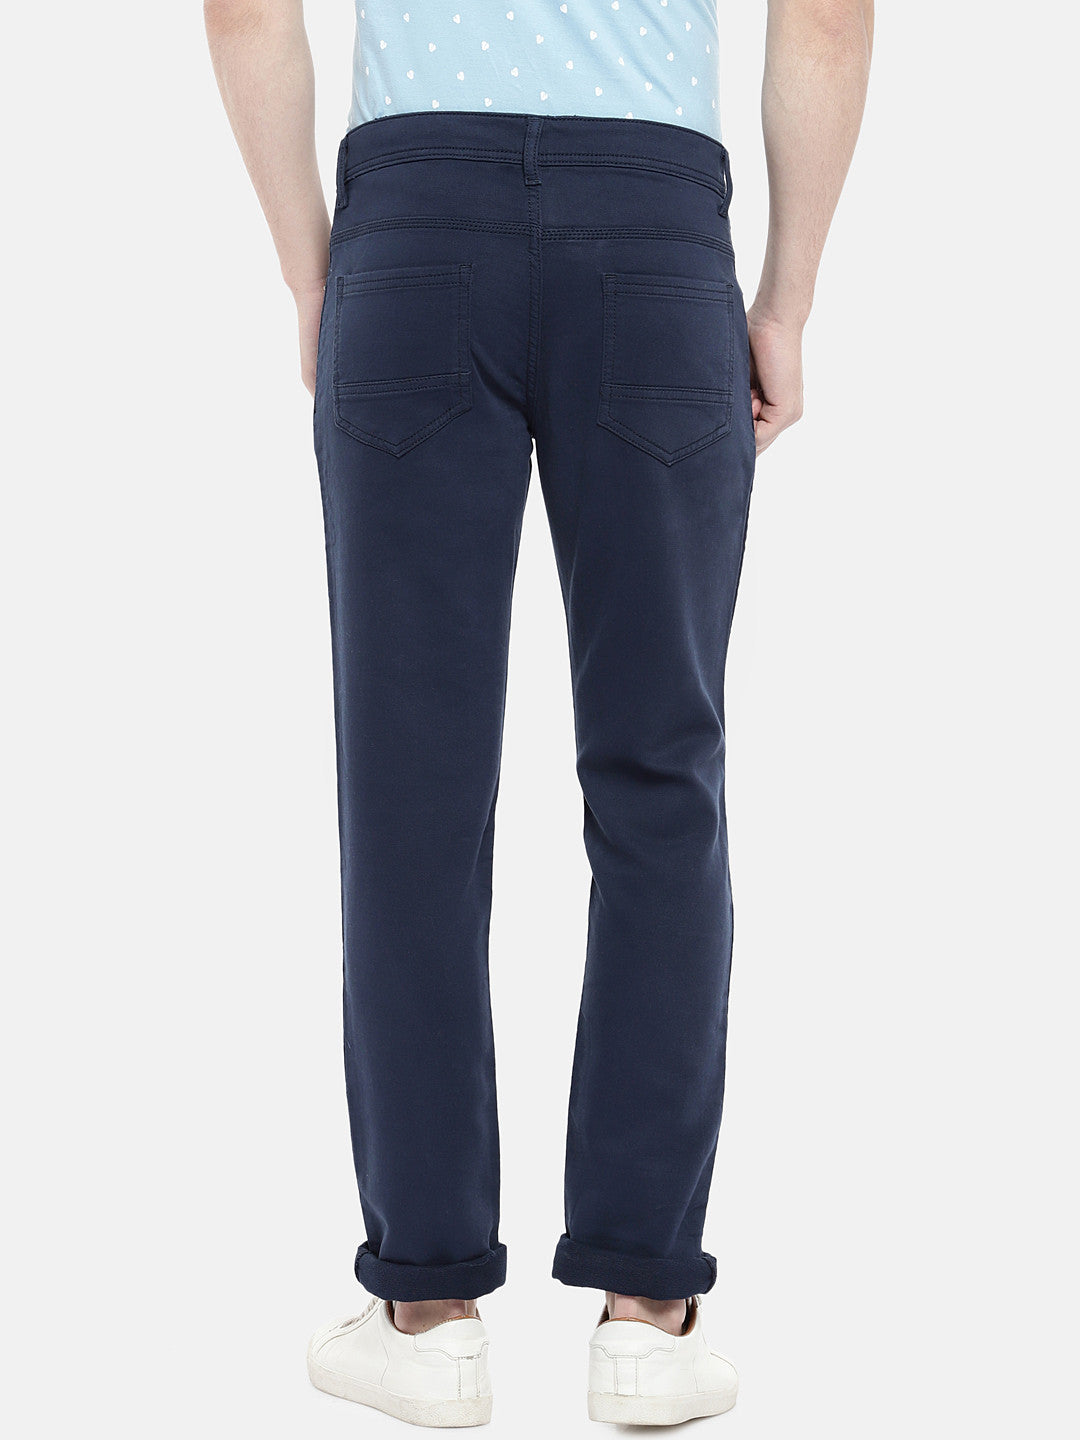 Navy Blue Regular Fit Solid Regular Trousers-3